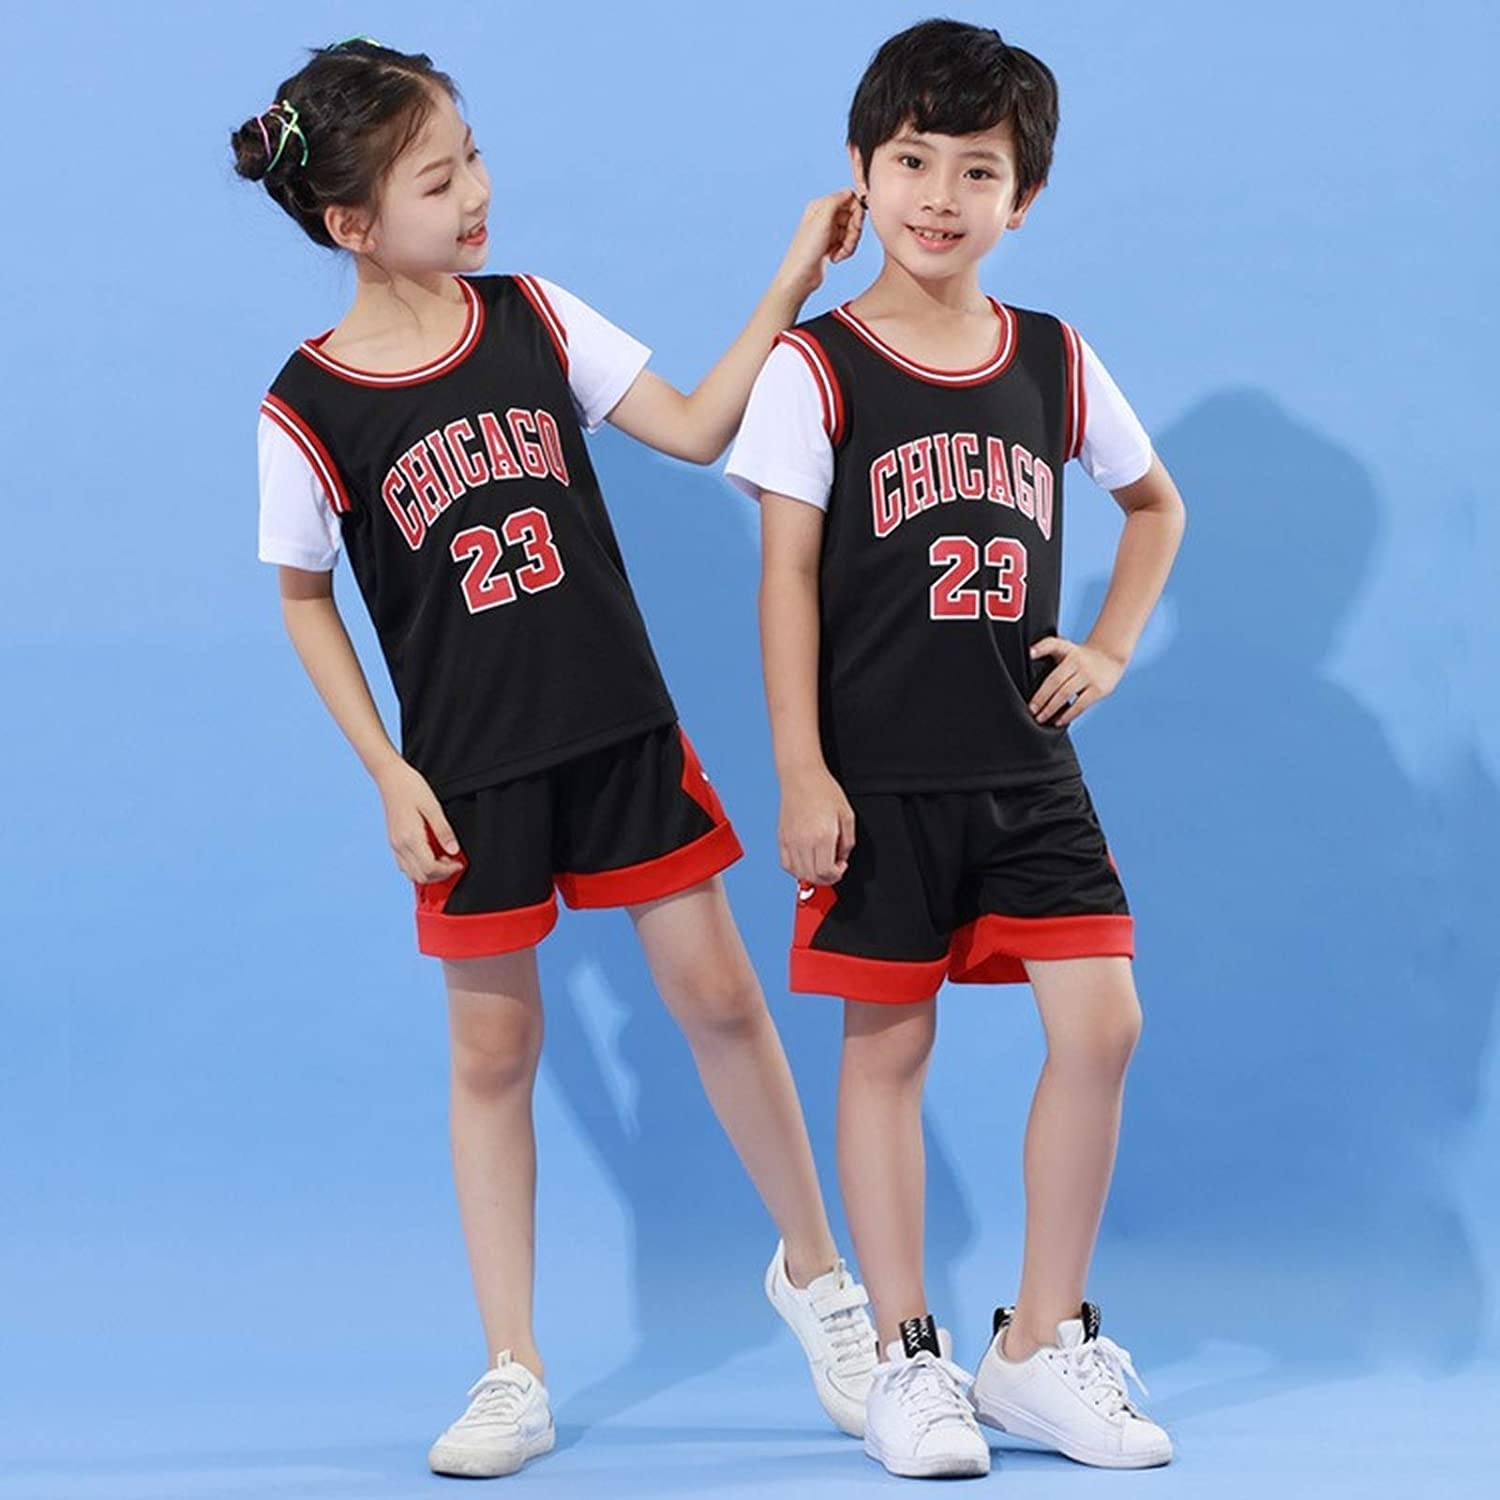 Aelstores Boys Basketball Summer Shorts Girls Top Vest Kit Set Size Age 2-14 Years BNWT